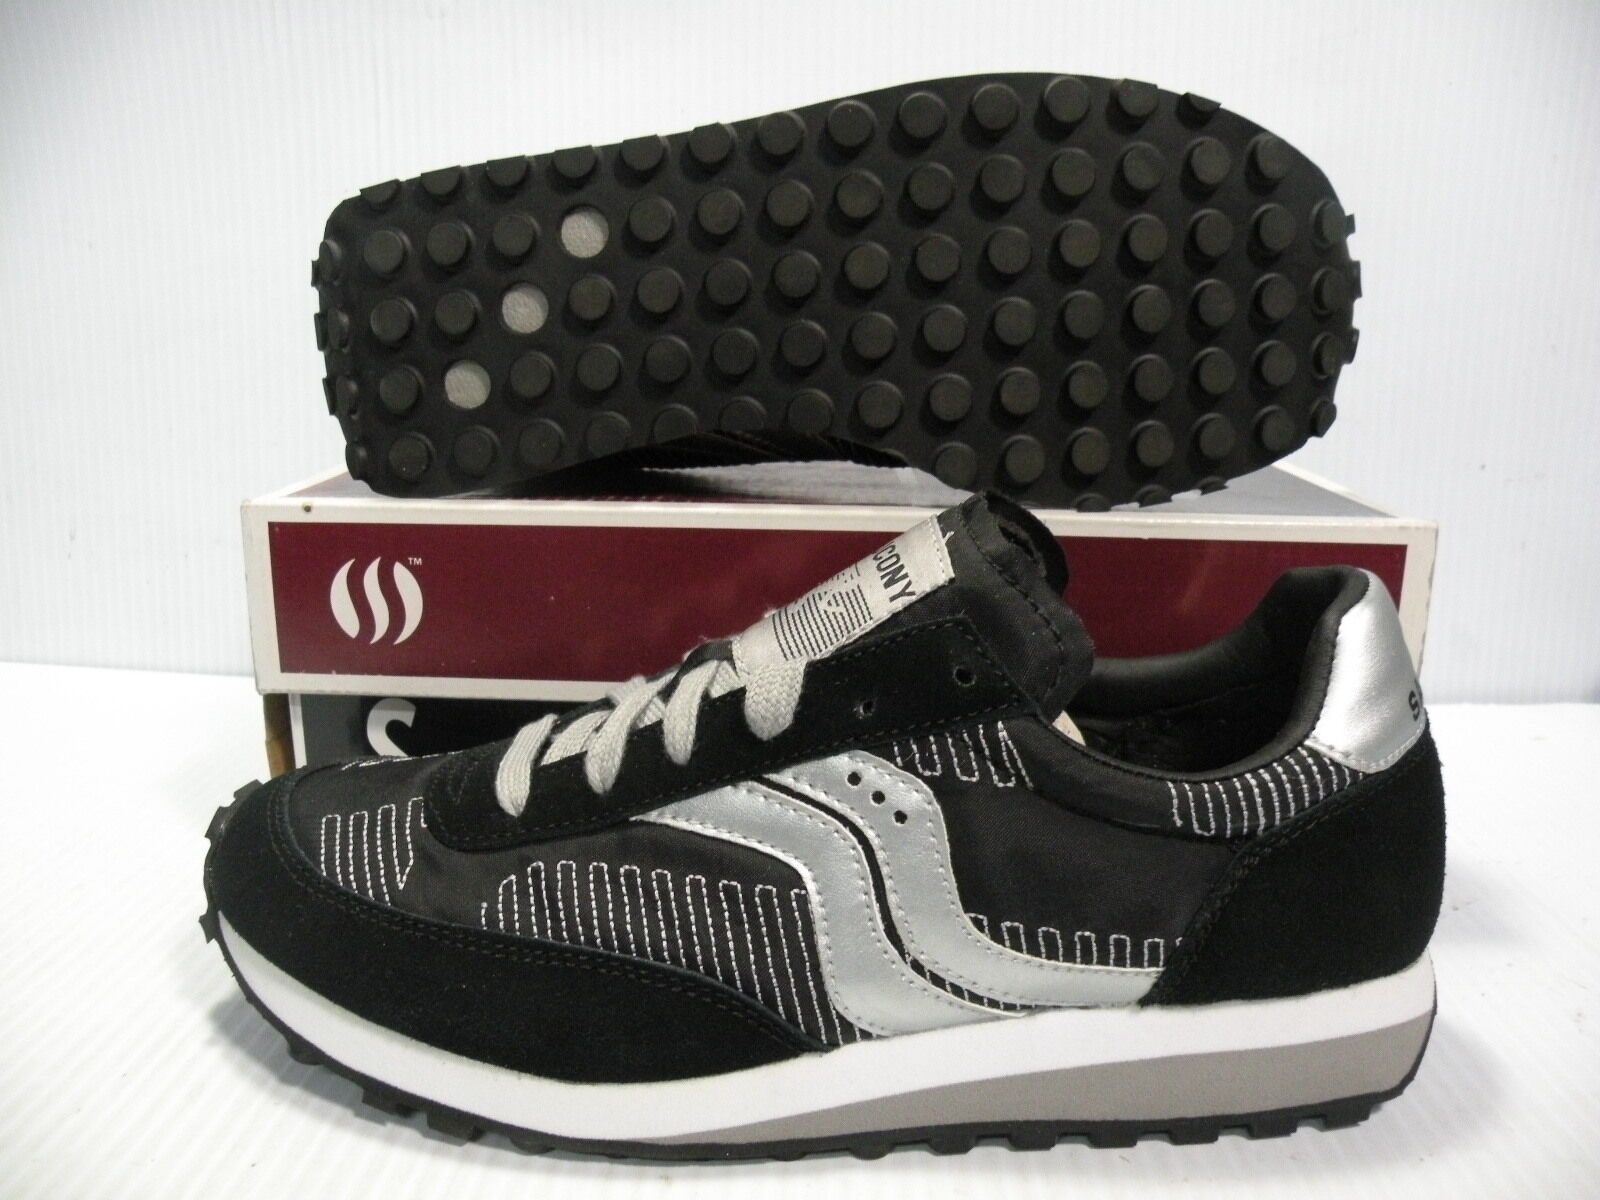 SAUCONY TRAINER LOW SNEAKERS WOMEN Schuhe BLACK/SILVER 2937-9 SIZE 6.5 NEU